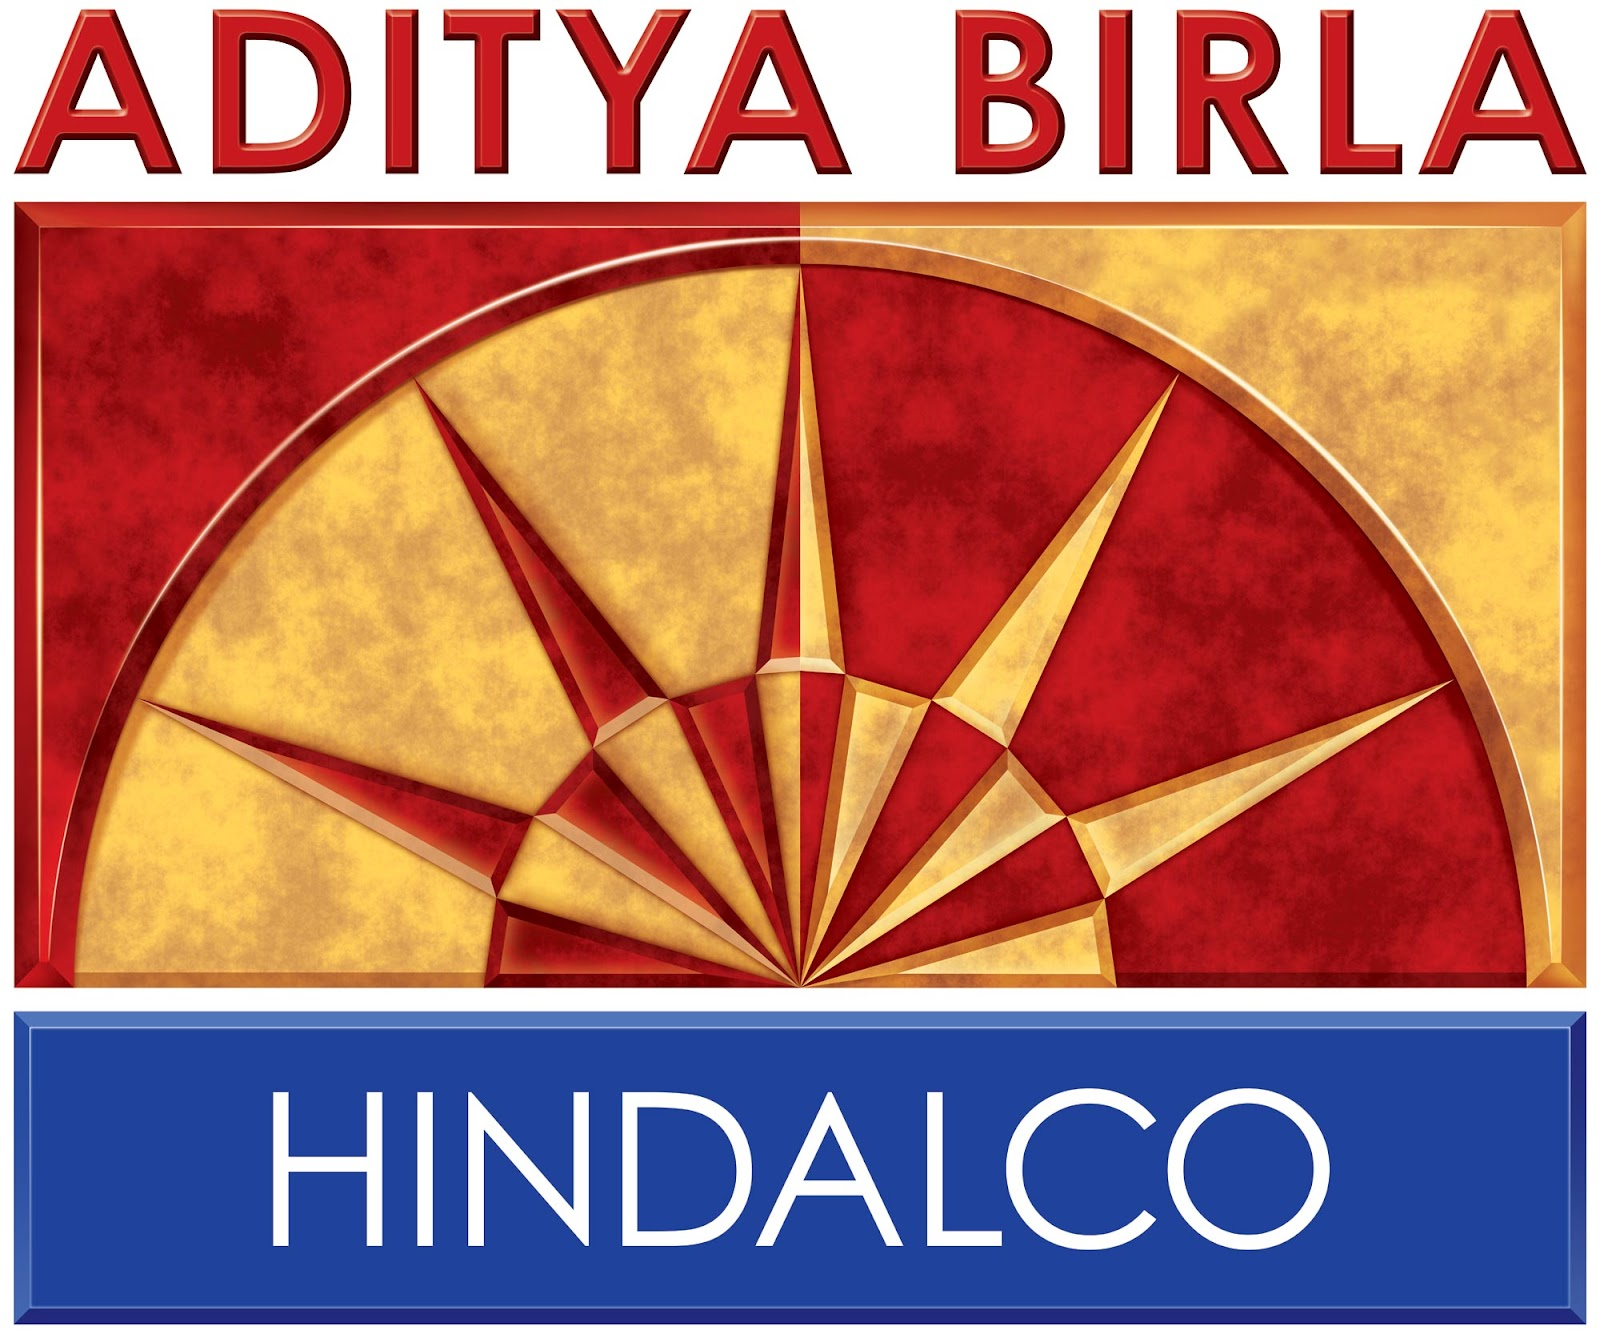 Hindalco fell 5.3 percent to hit its 52-week low of Rs 180.30 per share on the NSE. (Image: Company)